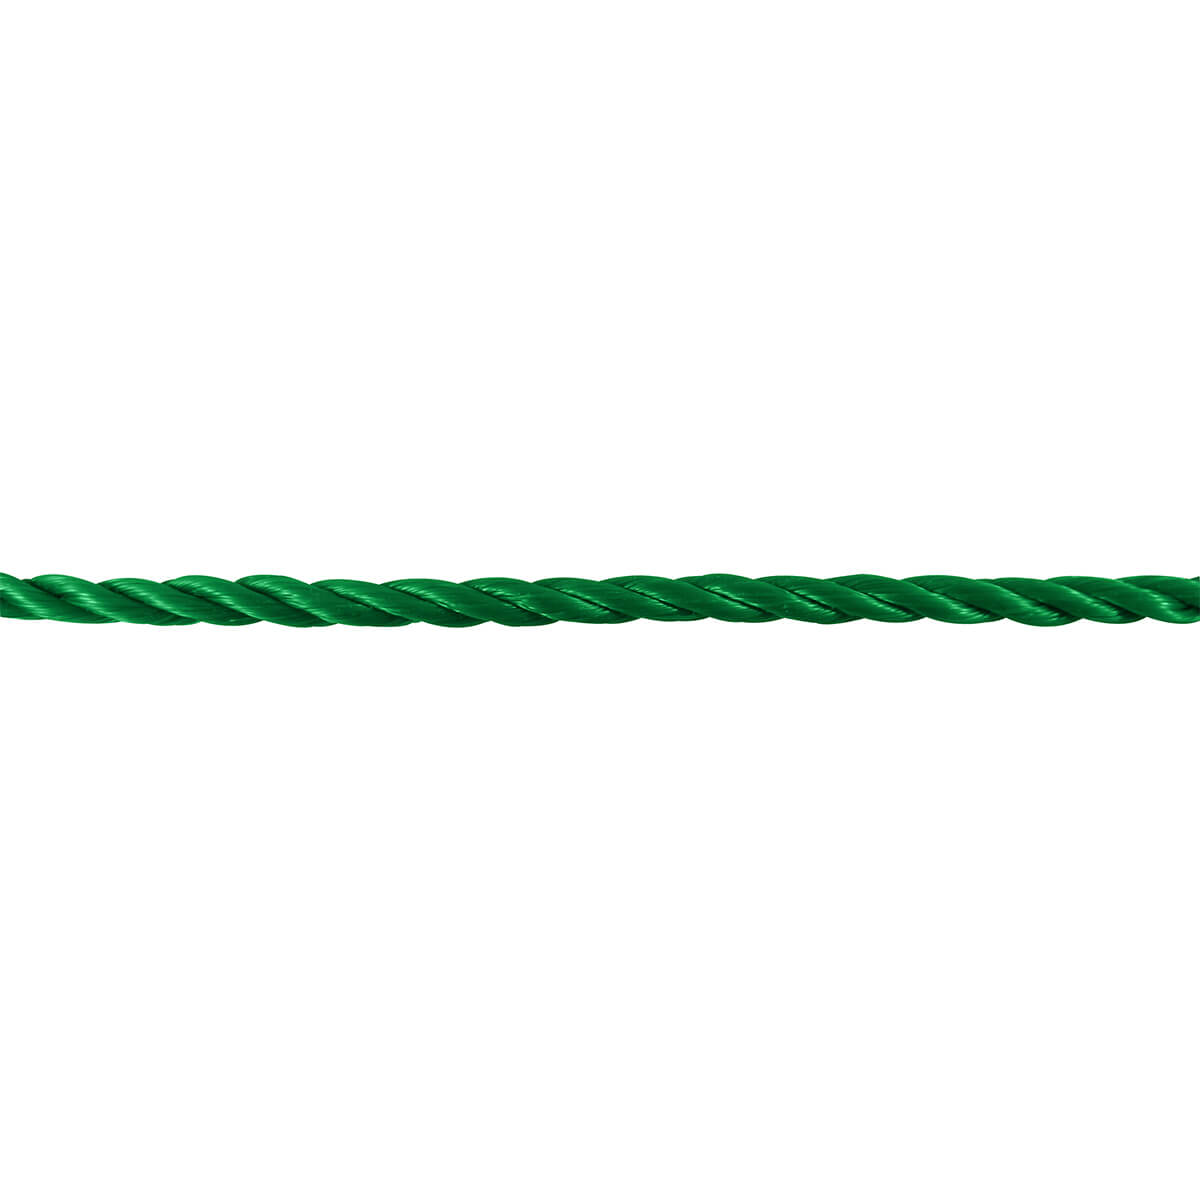 "1/2"" x 50' Polypropylene Twisted Rope - Green - 1/2"" x 50'"